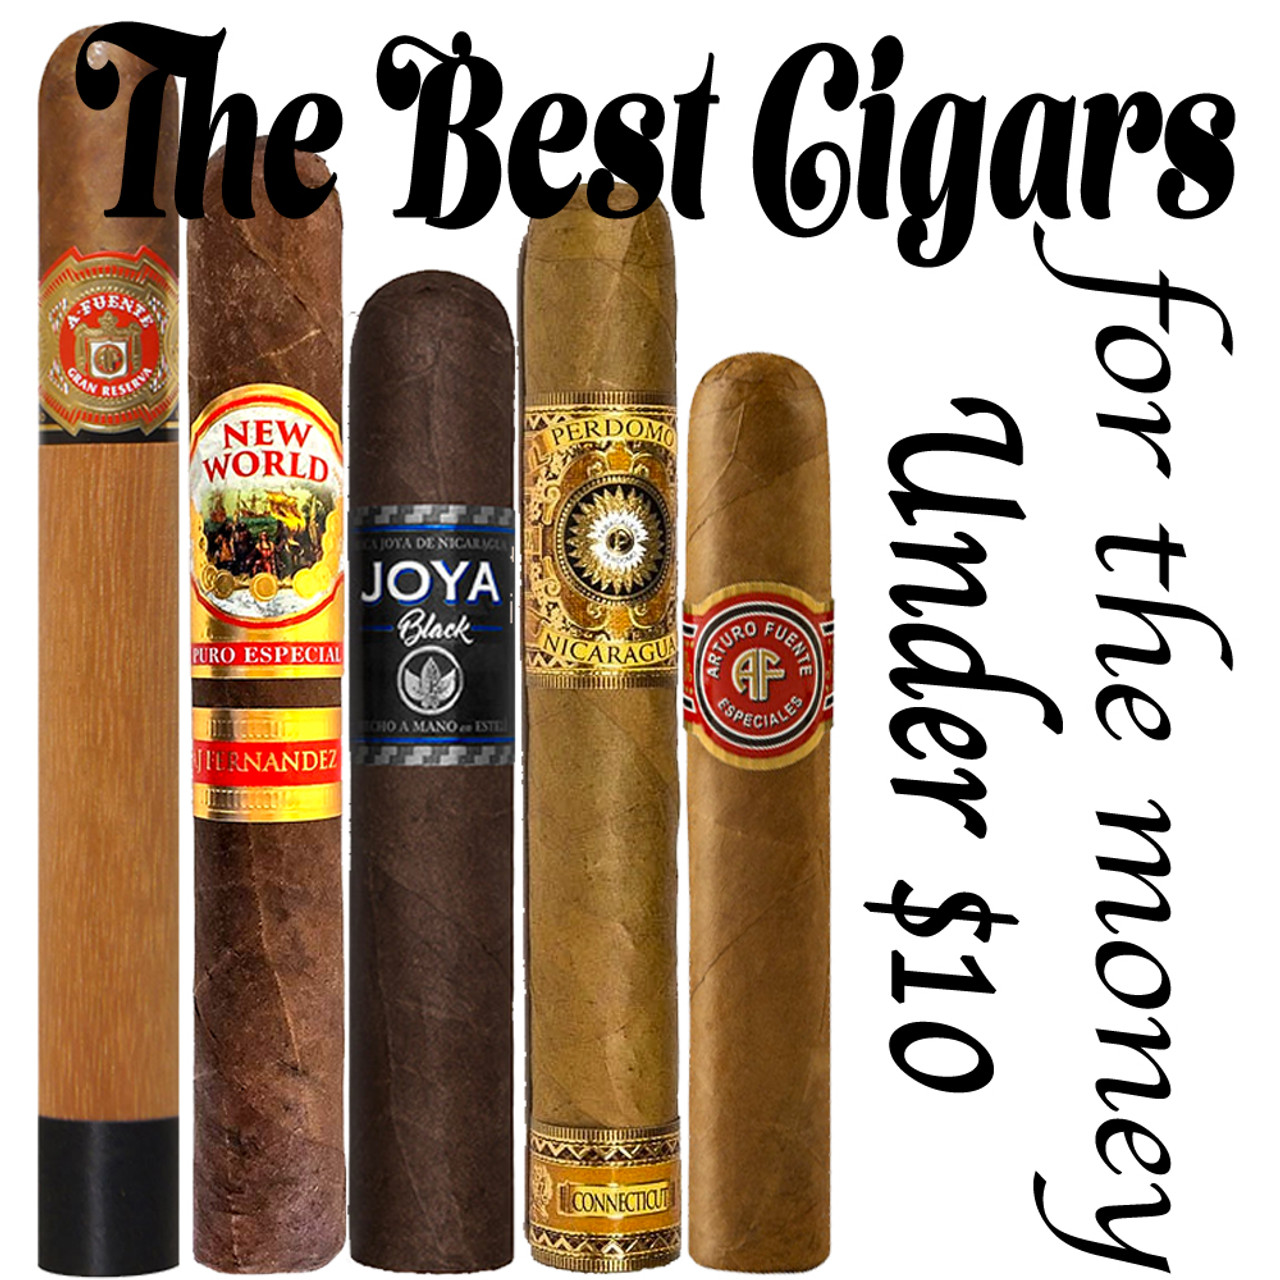 5 of The Best Cigars for the Money under $10